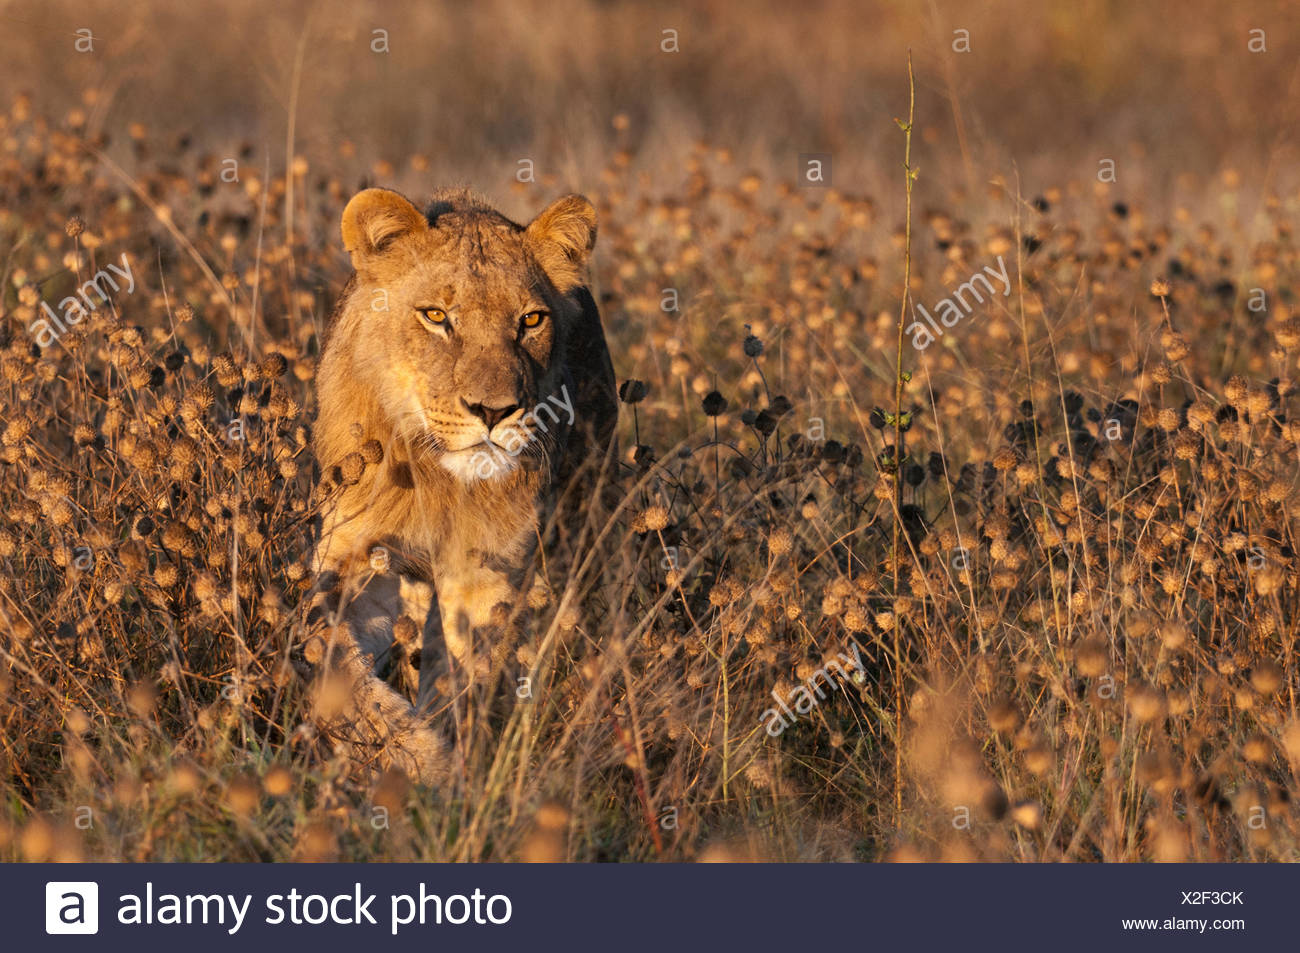 A young male lion, Panthera leo, walking among tall weeds. - Stock Image